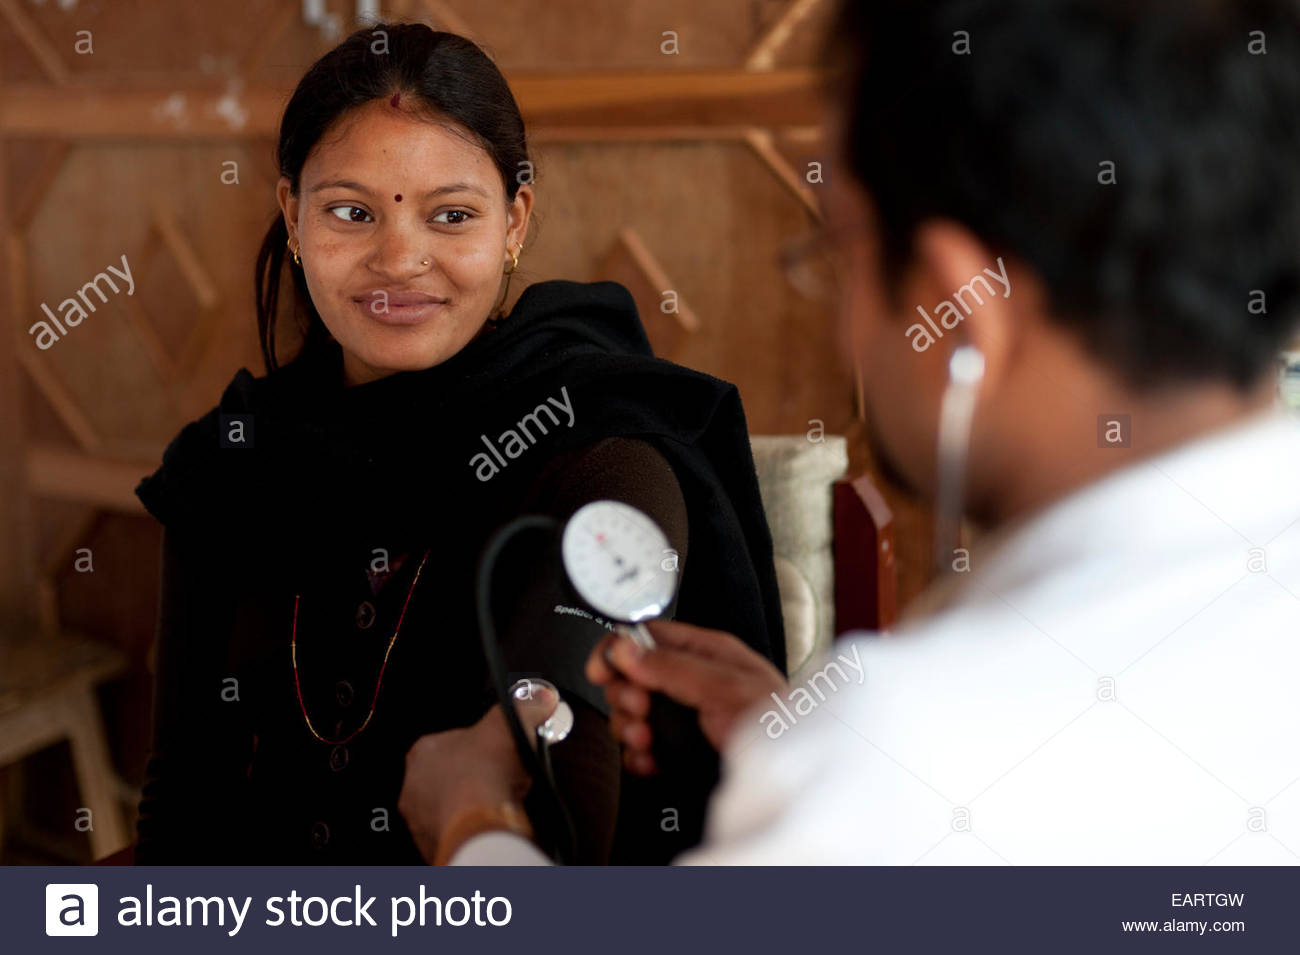 A doctor checks a woman's blood pressure in a hospital in rural Nepal. - Stock Image